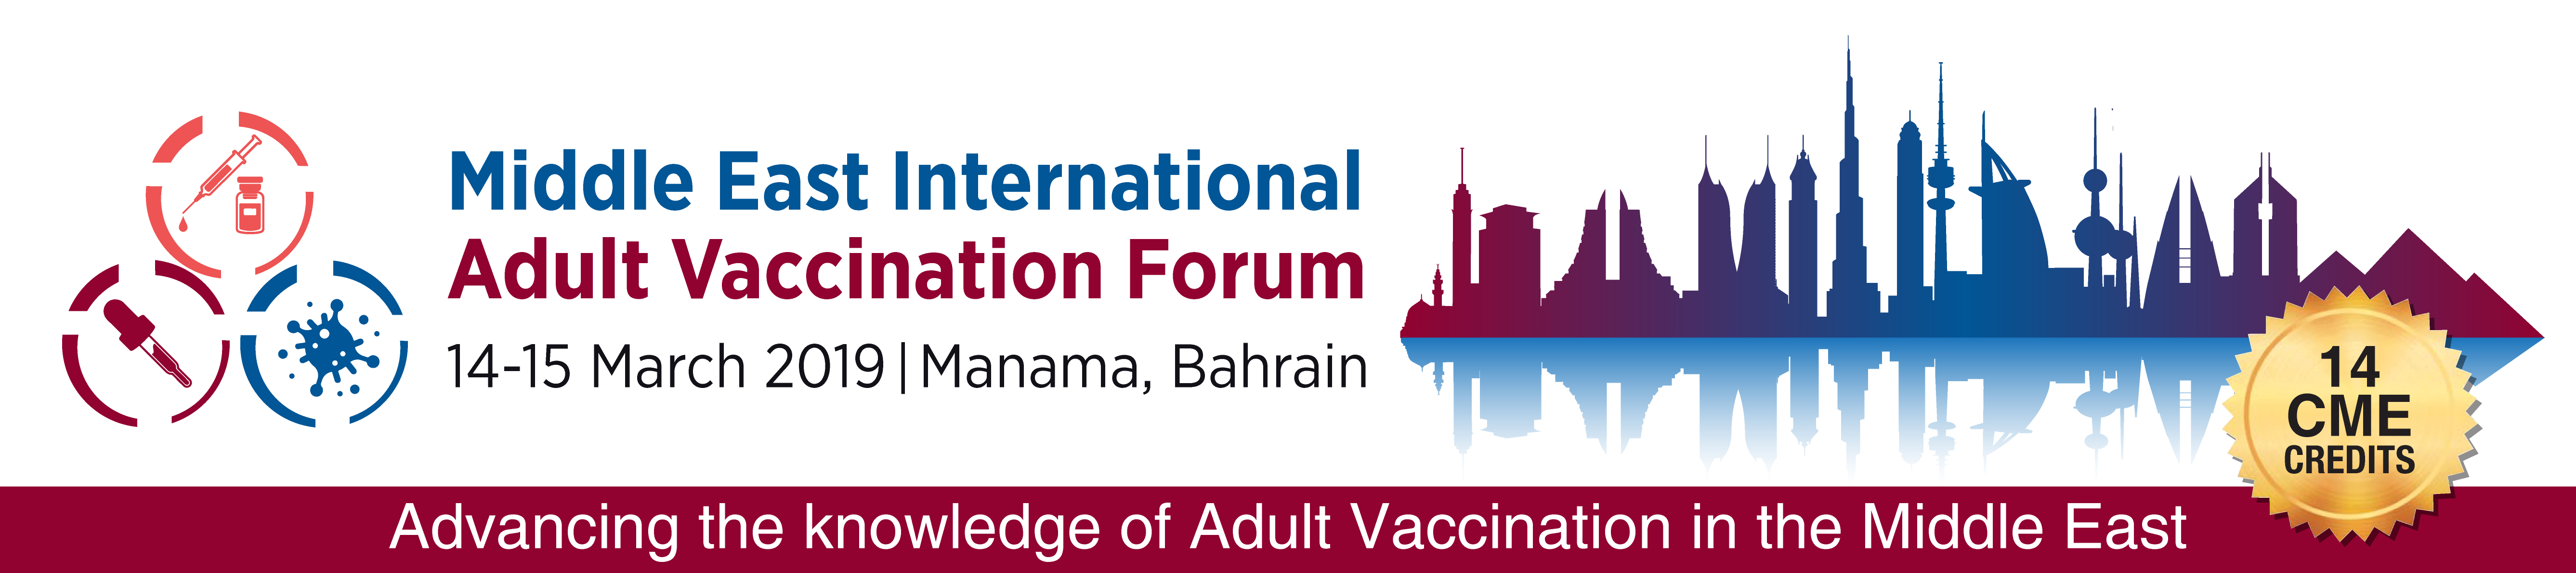 Adult-Vaccination_Banner CME